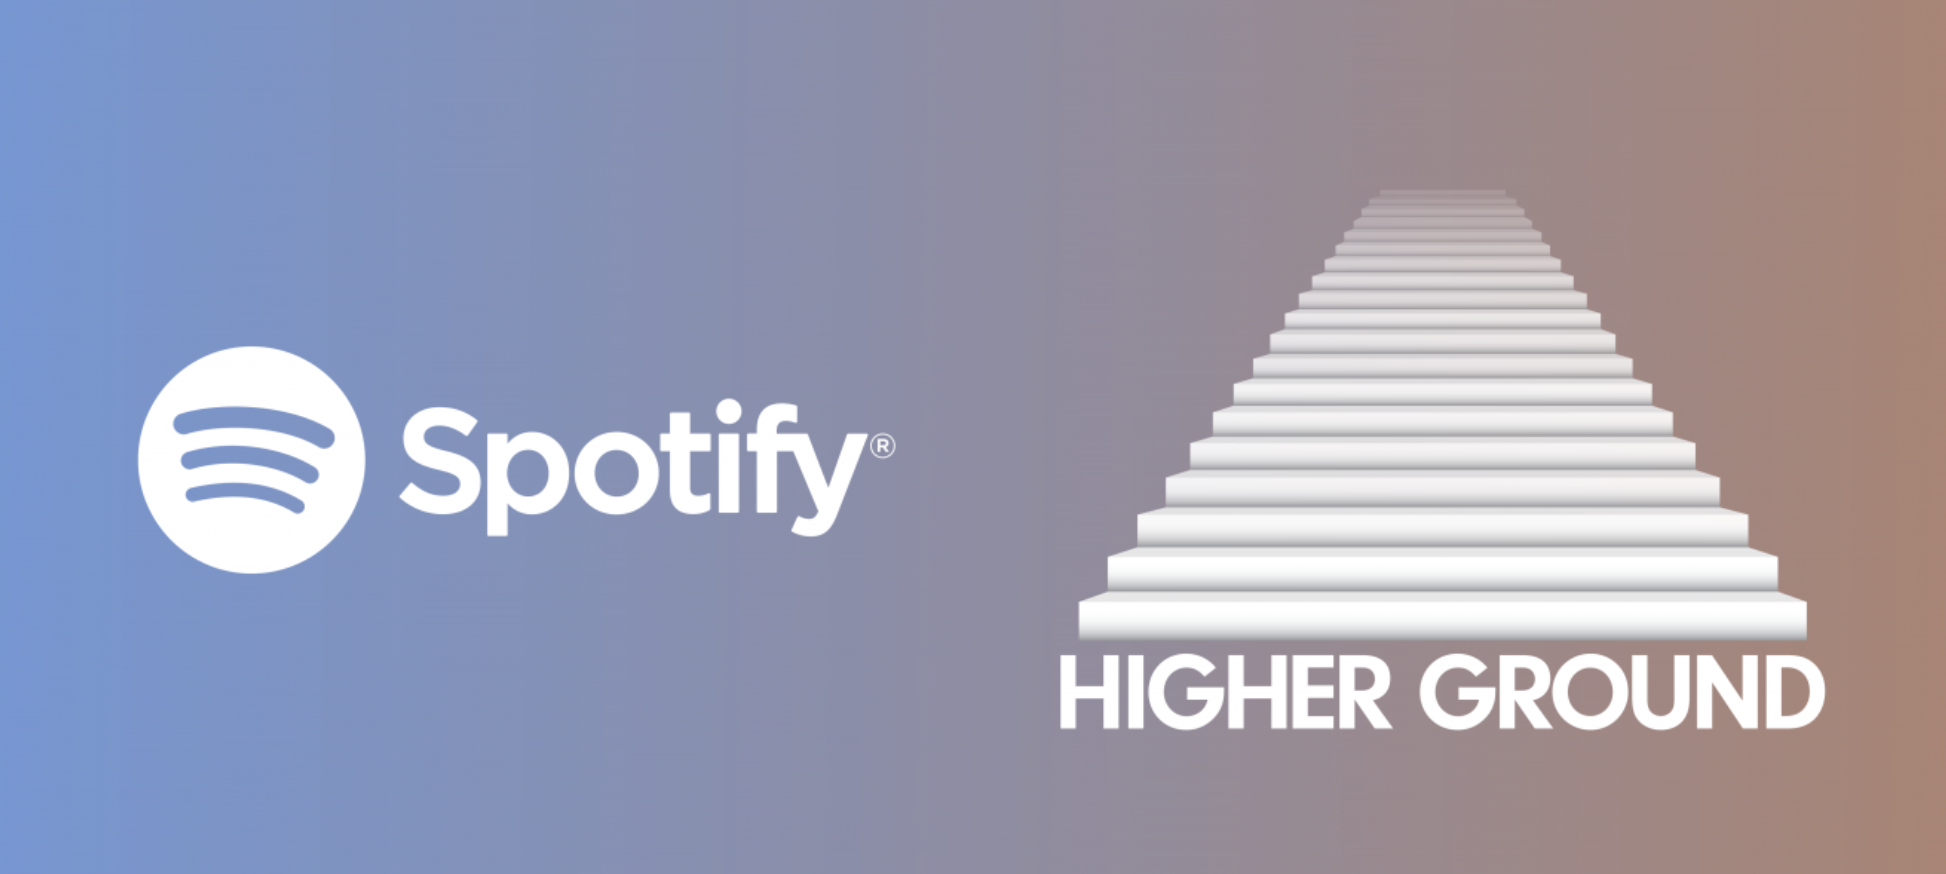 spotify higher ground audio